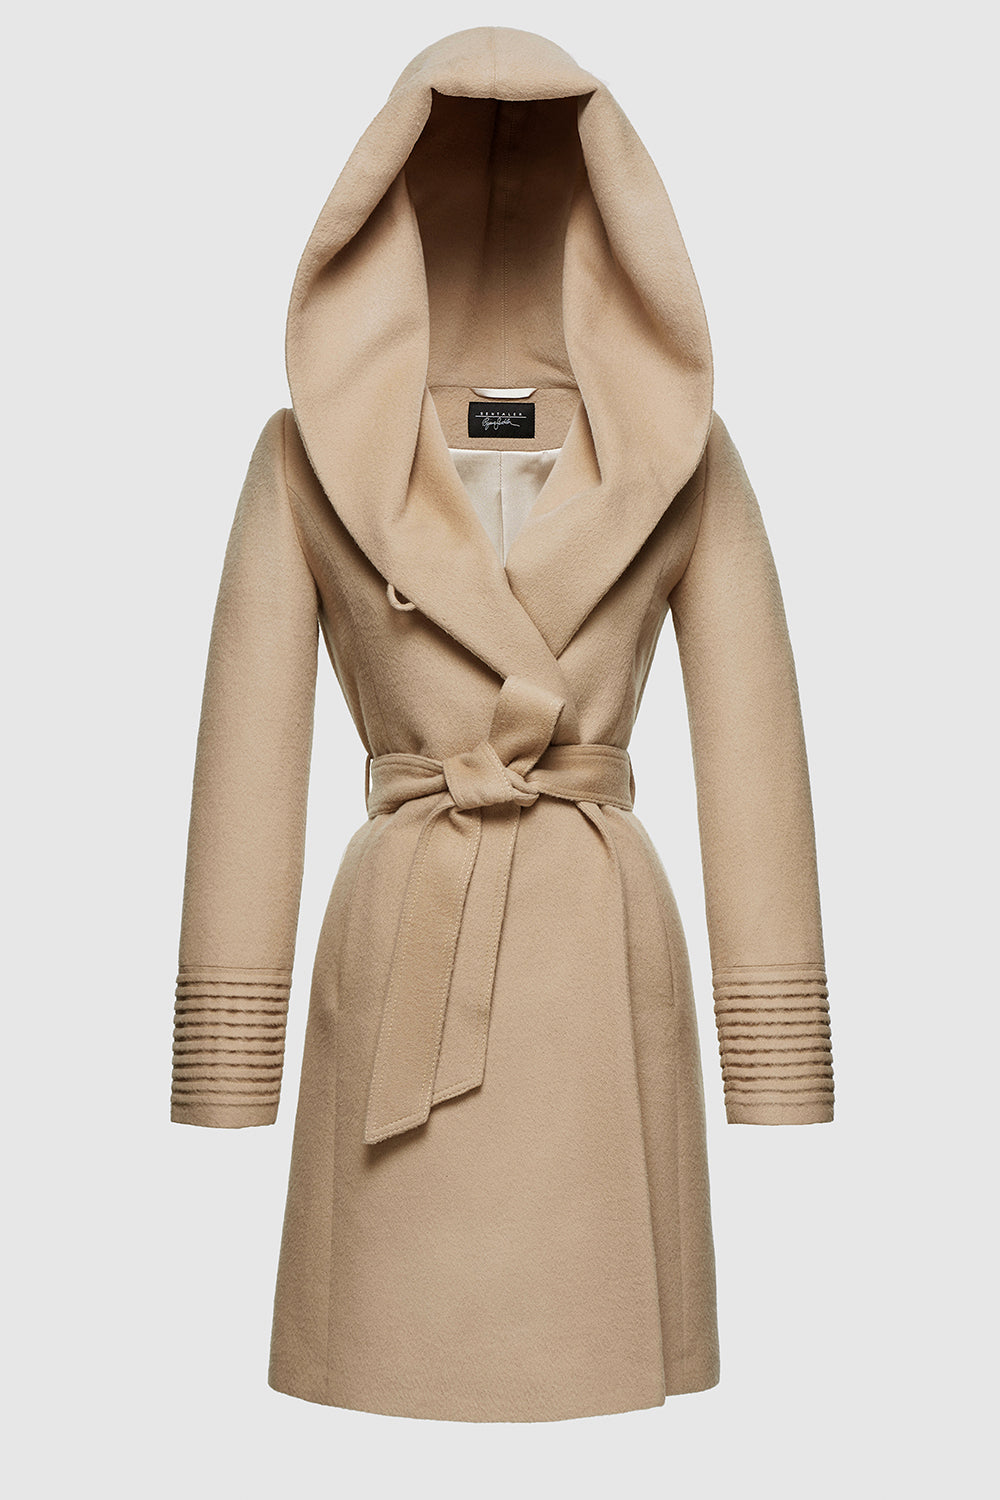 Sentaler Mid Length Hooded Wrap Coat featured in Baby Alpaca and available in Camel. Seen off model.